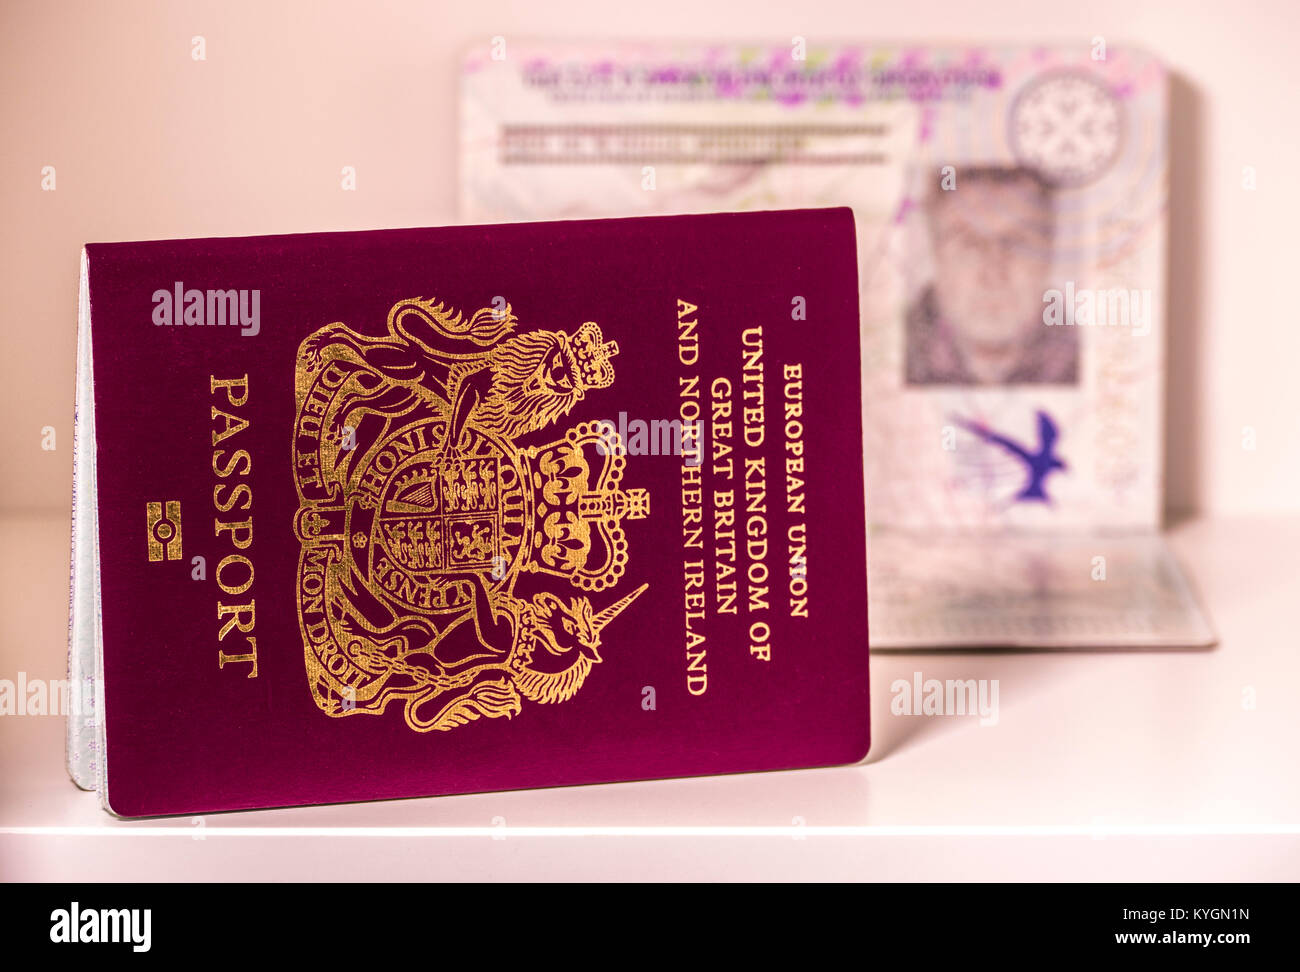 Passport Photo Stock Photos & Passport Photo Stock Images